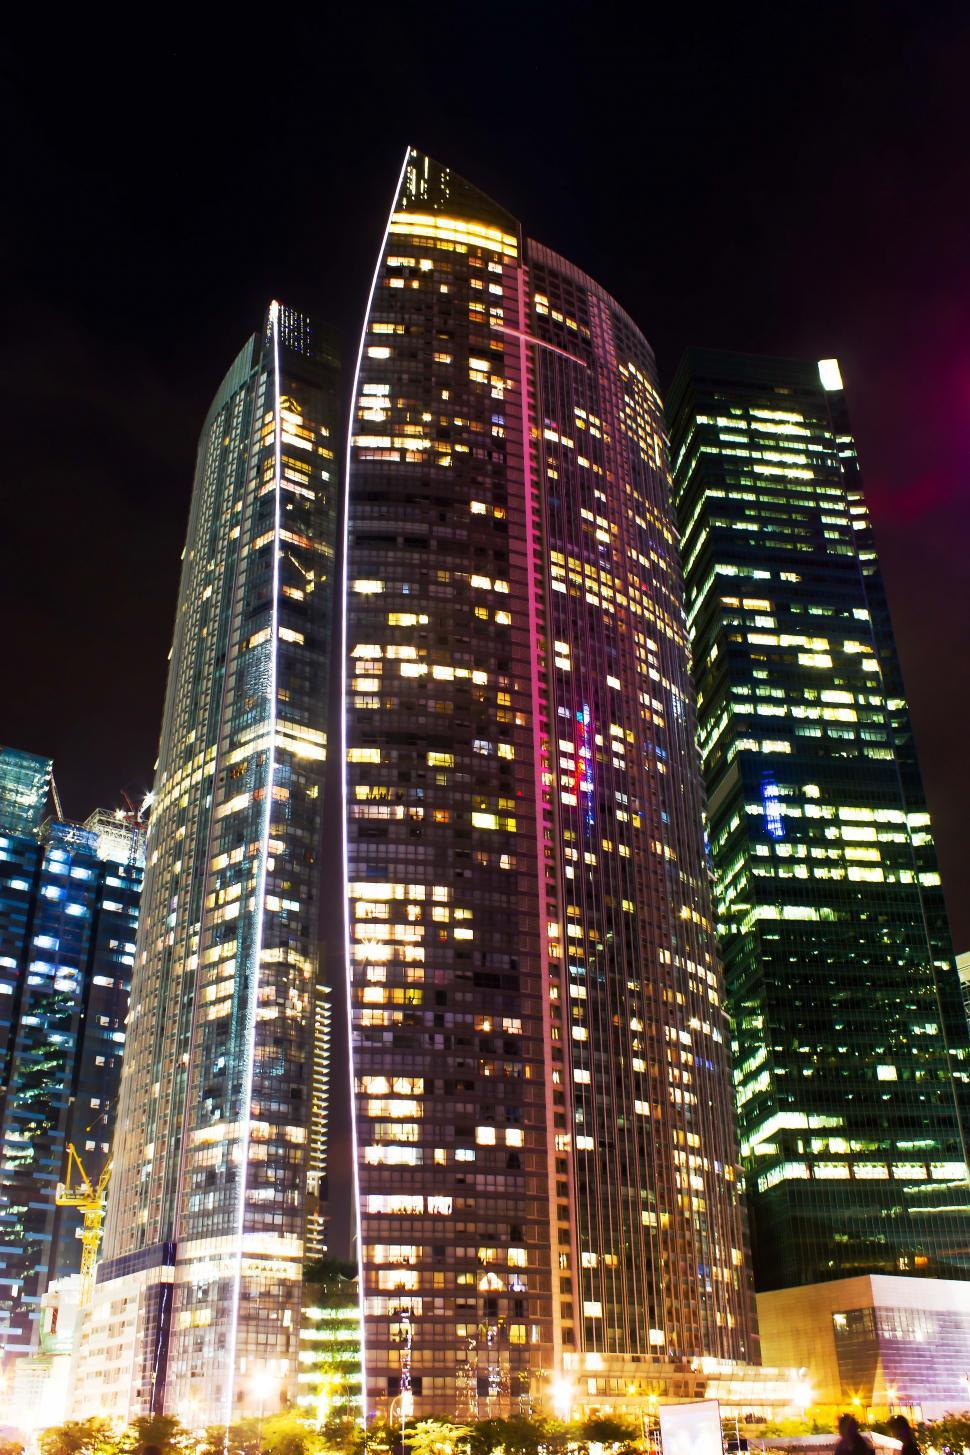 Download Free Stock HD Photo of Office high rise at night night office building Online